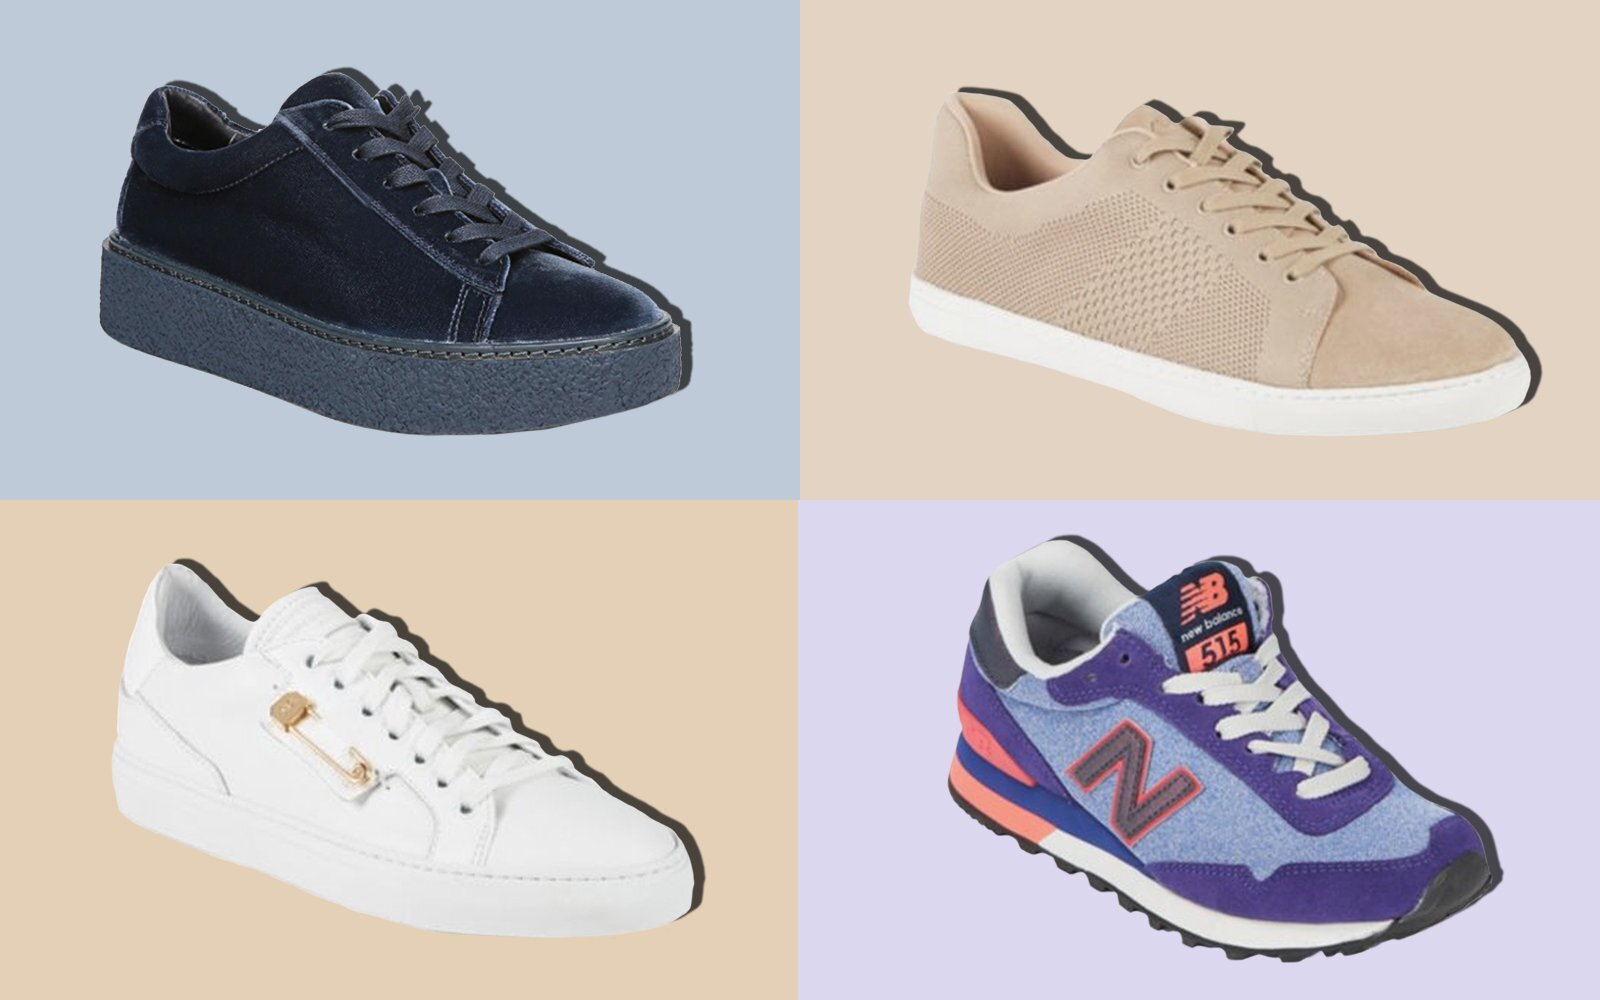 f160e6812 Saks Off 5th's 48-hour Sale Has Cute and Comfy Sneakers for Under ...